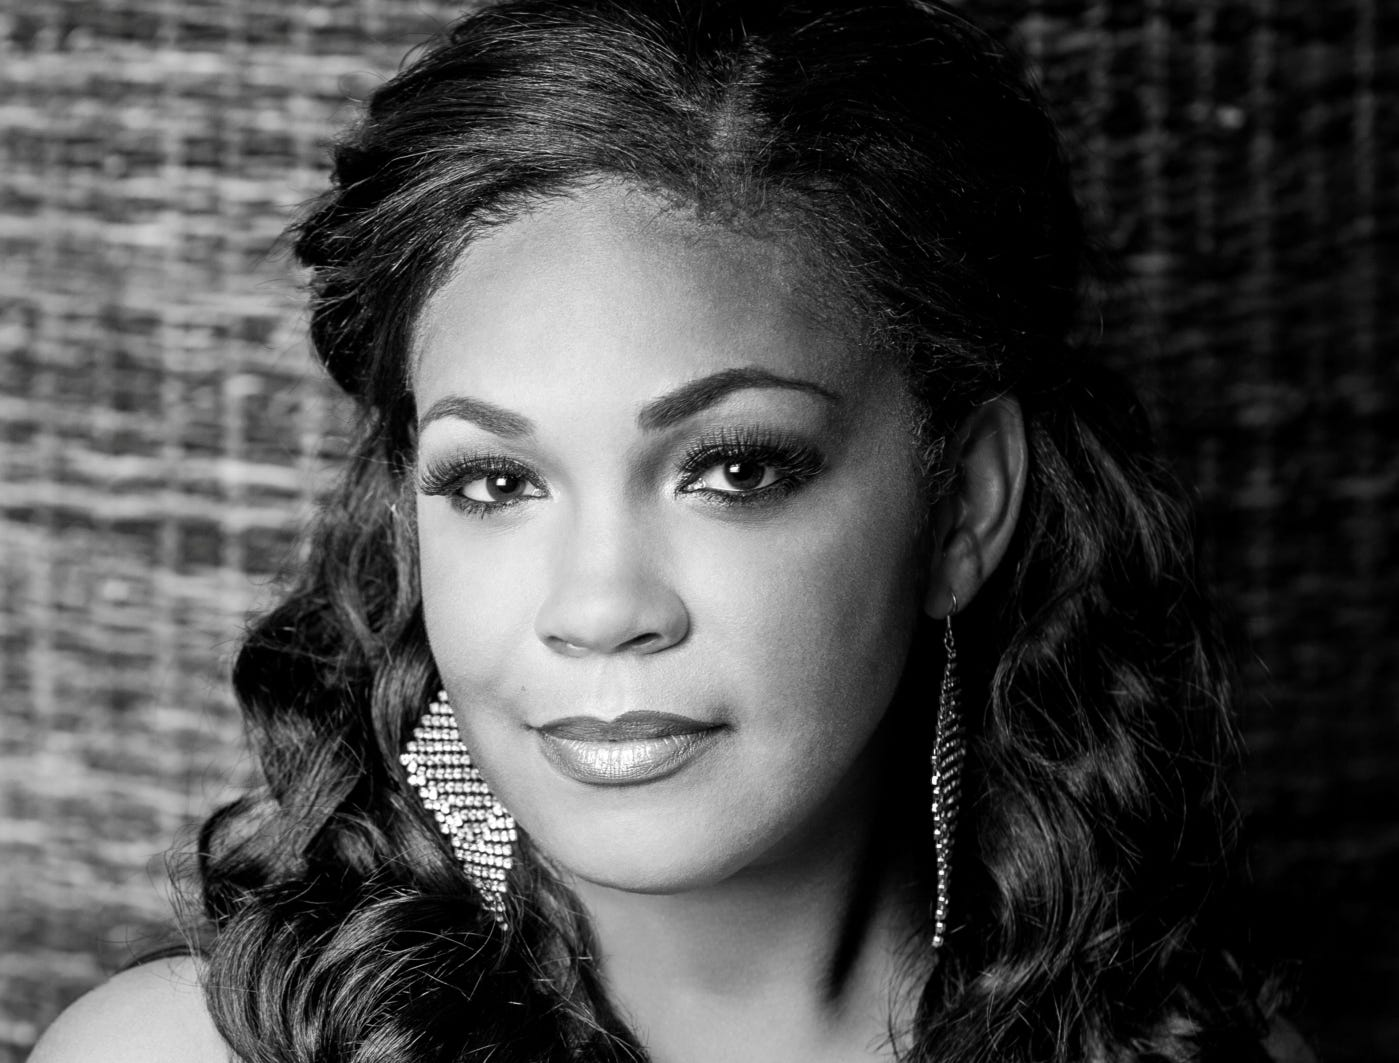 Soprano Janai Brugger will appear with the Cincinnati Symphony Orchestra during its 125th anniversary season, 2019-2020.